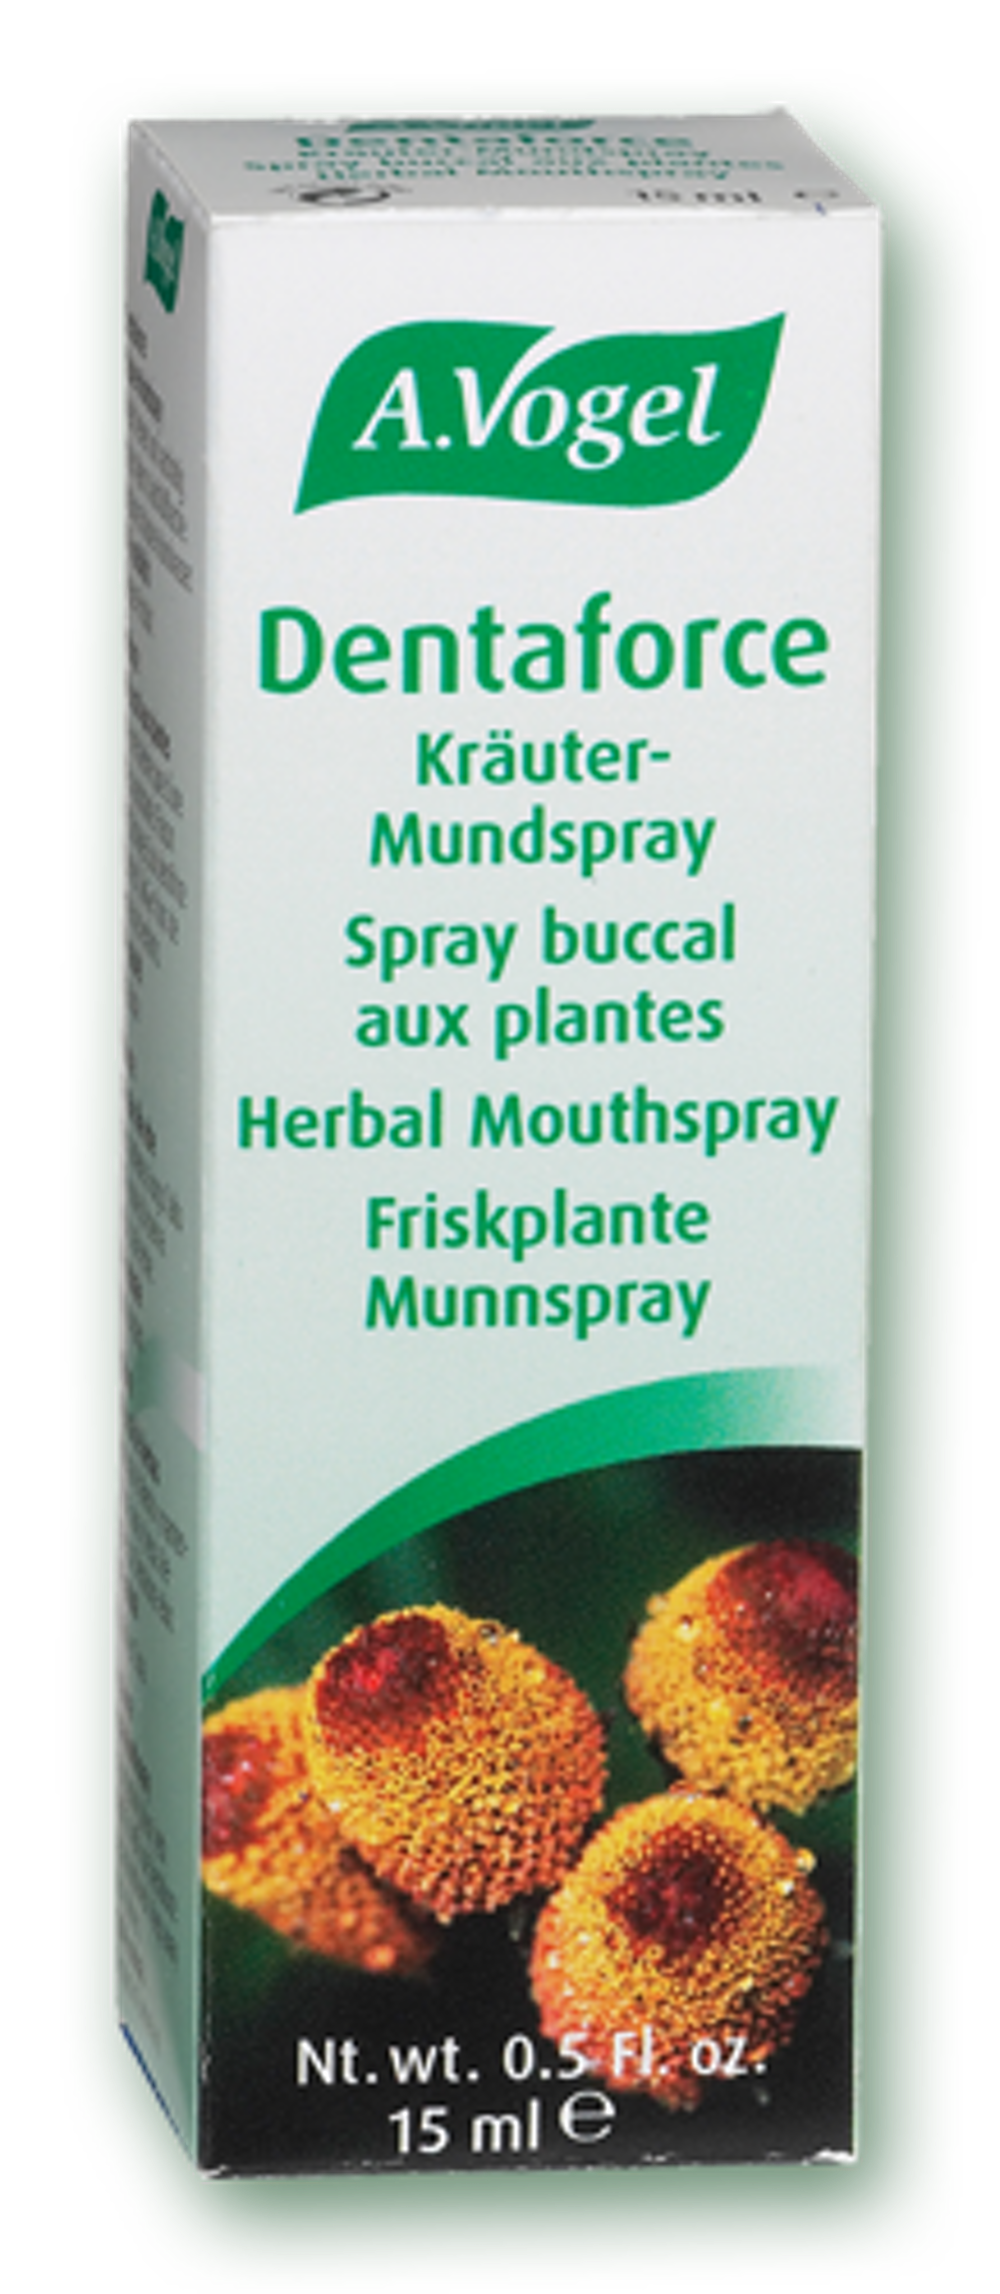 A.Vogel Dentaforce Vaporisateur Buccal